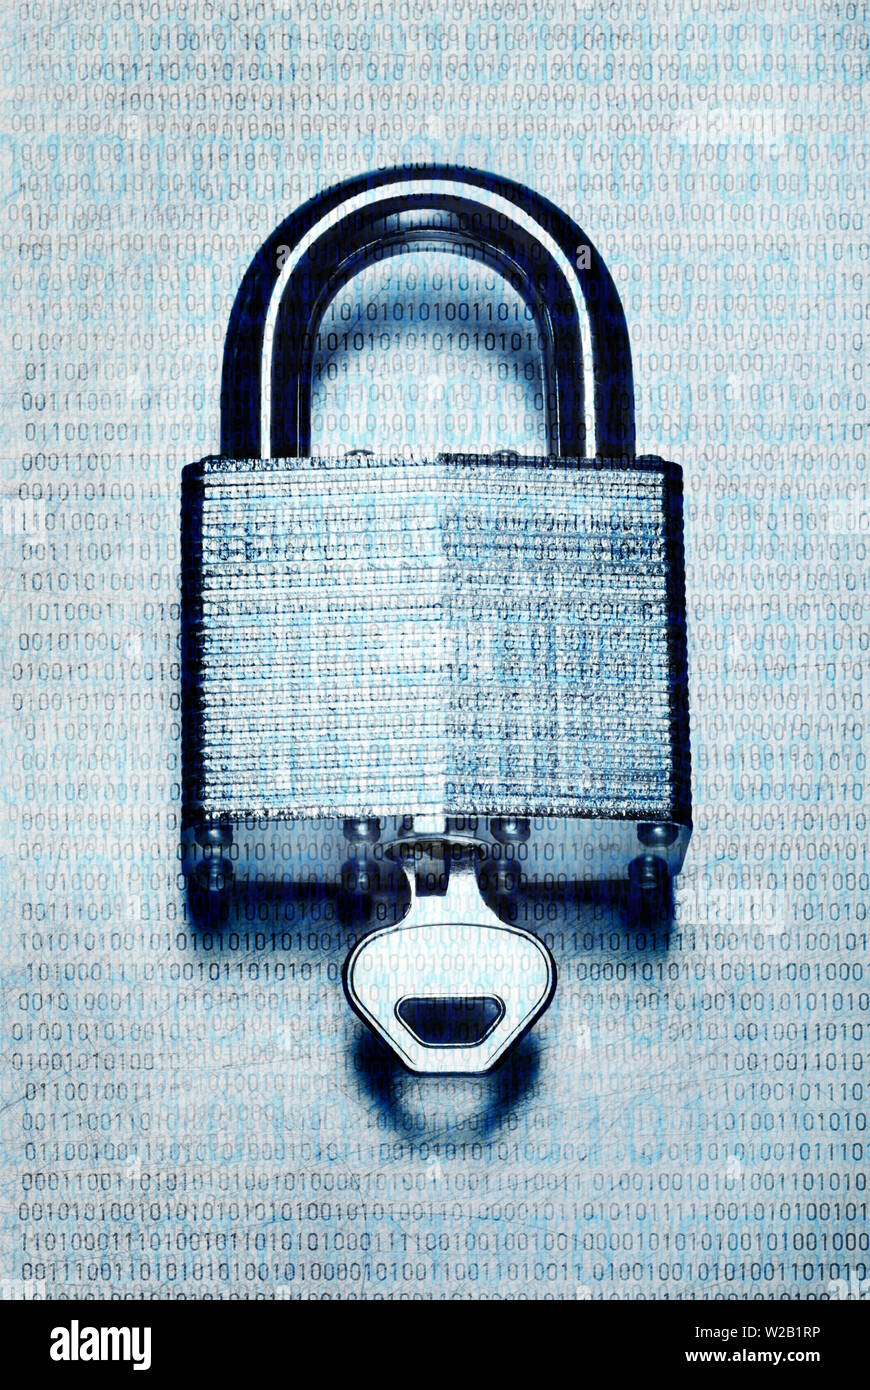 Concept digital security and encryption with binary code overlaid on steel padlock and key on scratched steel surface - Stock Image